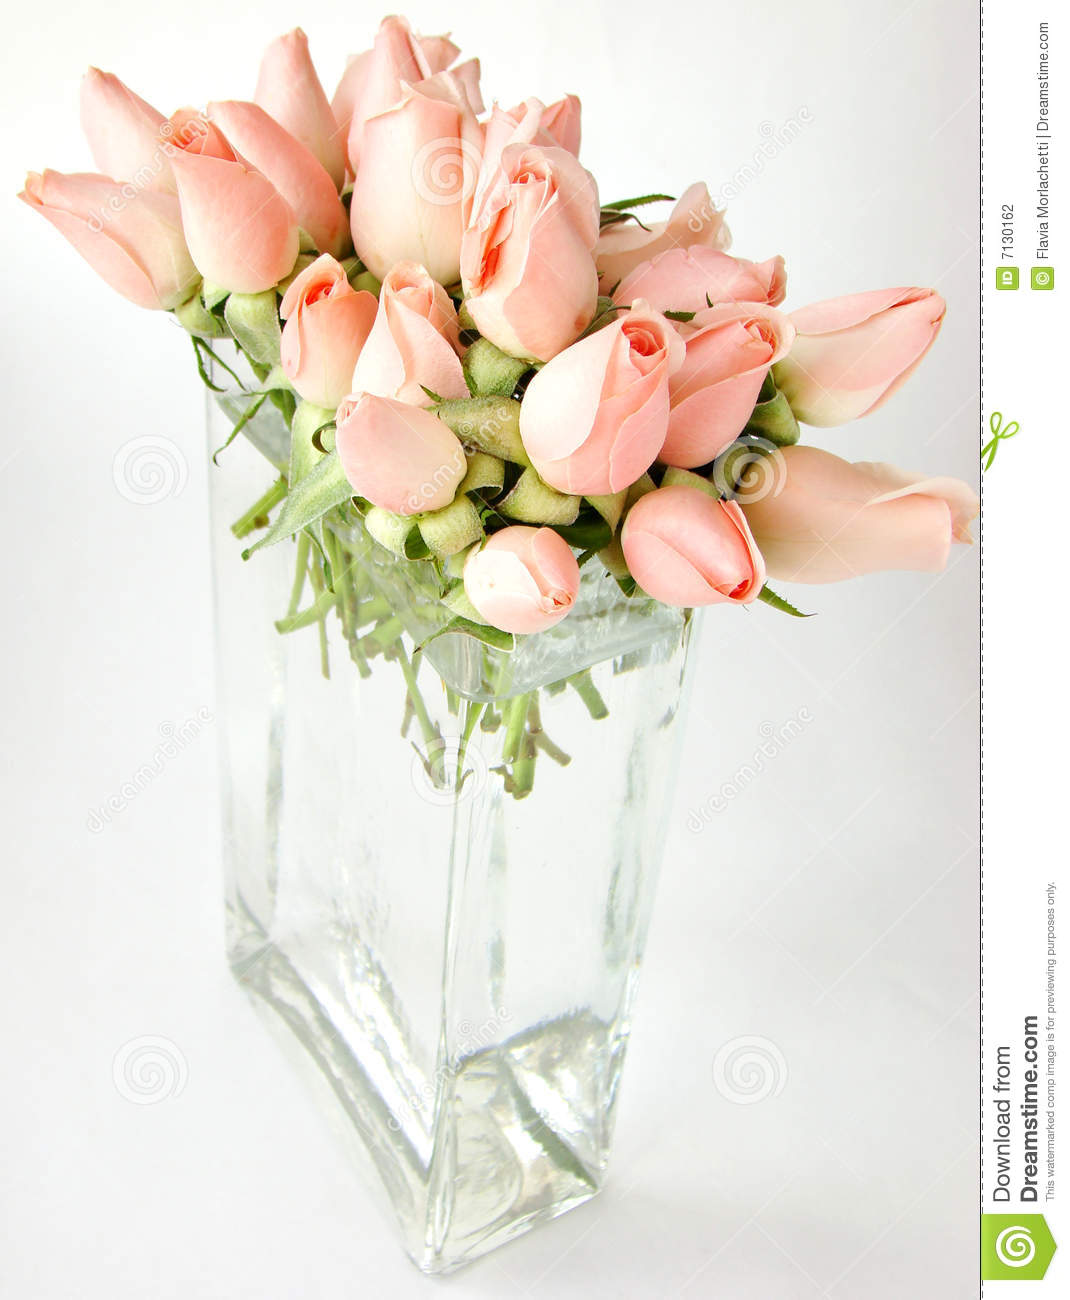 petit bouquet rose de roses sur le vase photo stock image du romantique orientation 7130162. Black Bedroom Furniture Sets. Home Design Ideas